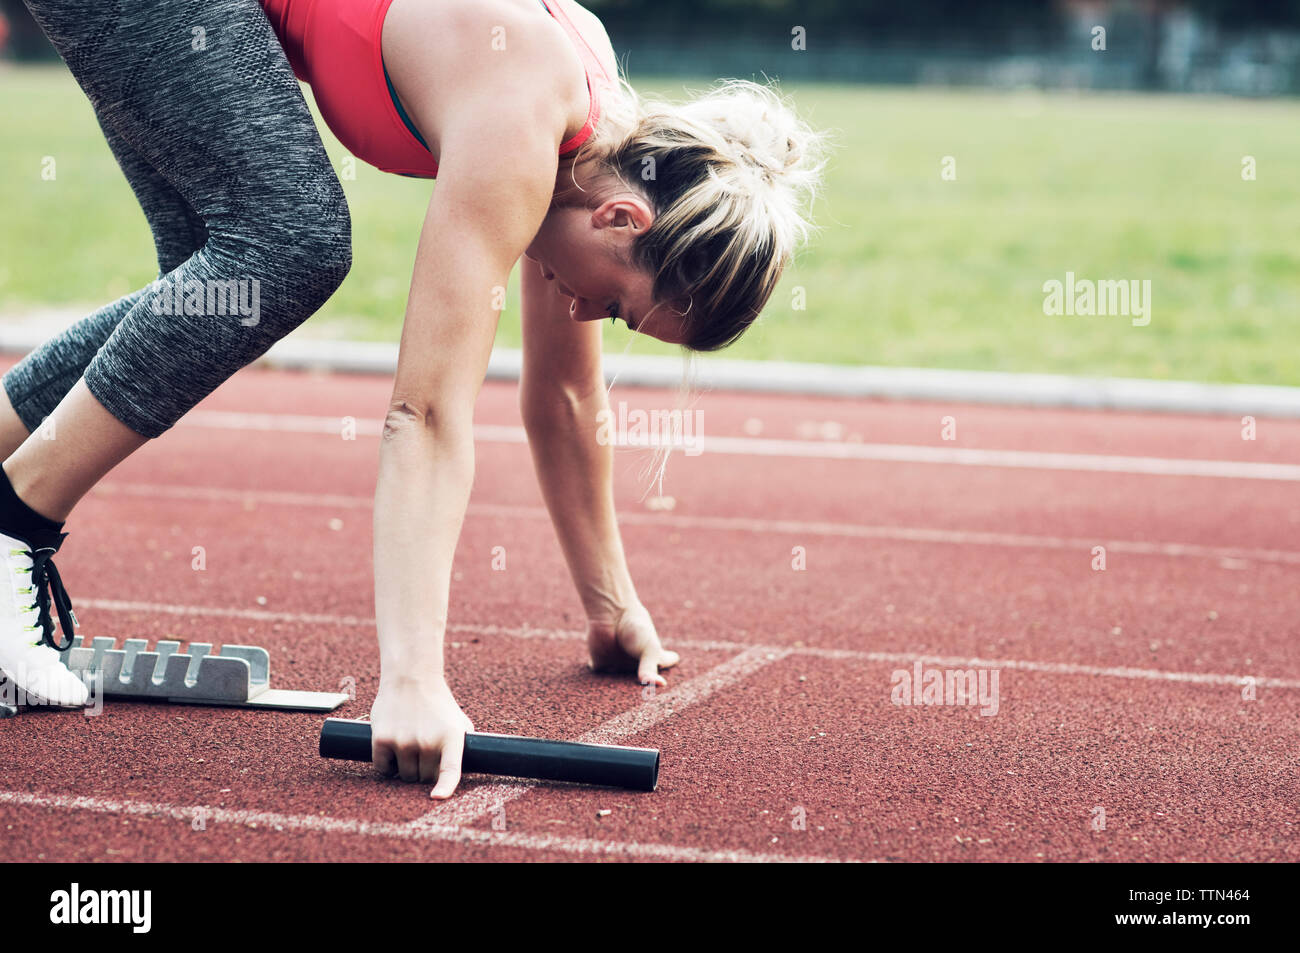 Athlete with relay baton poised at starting block on track Stock Photo